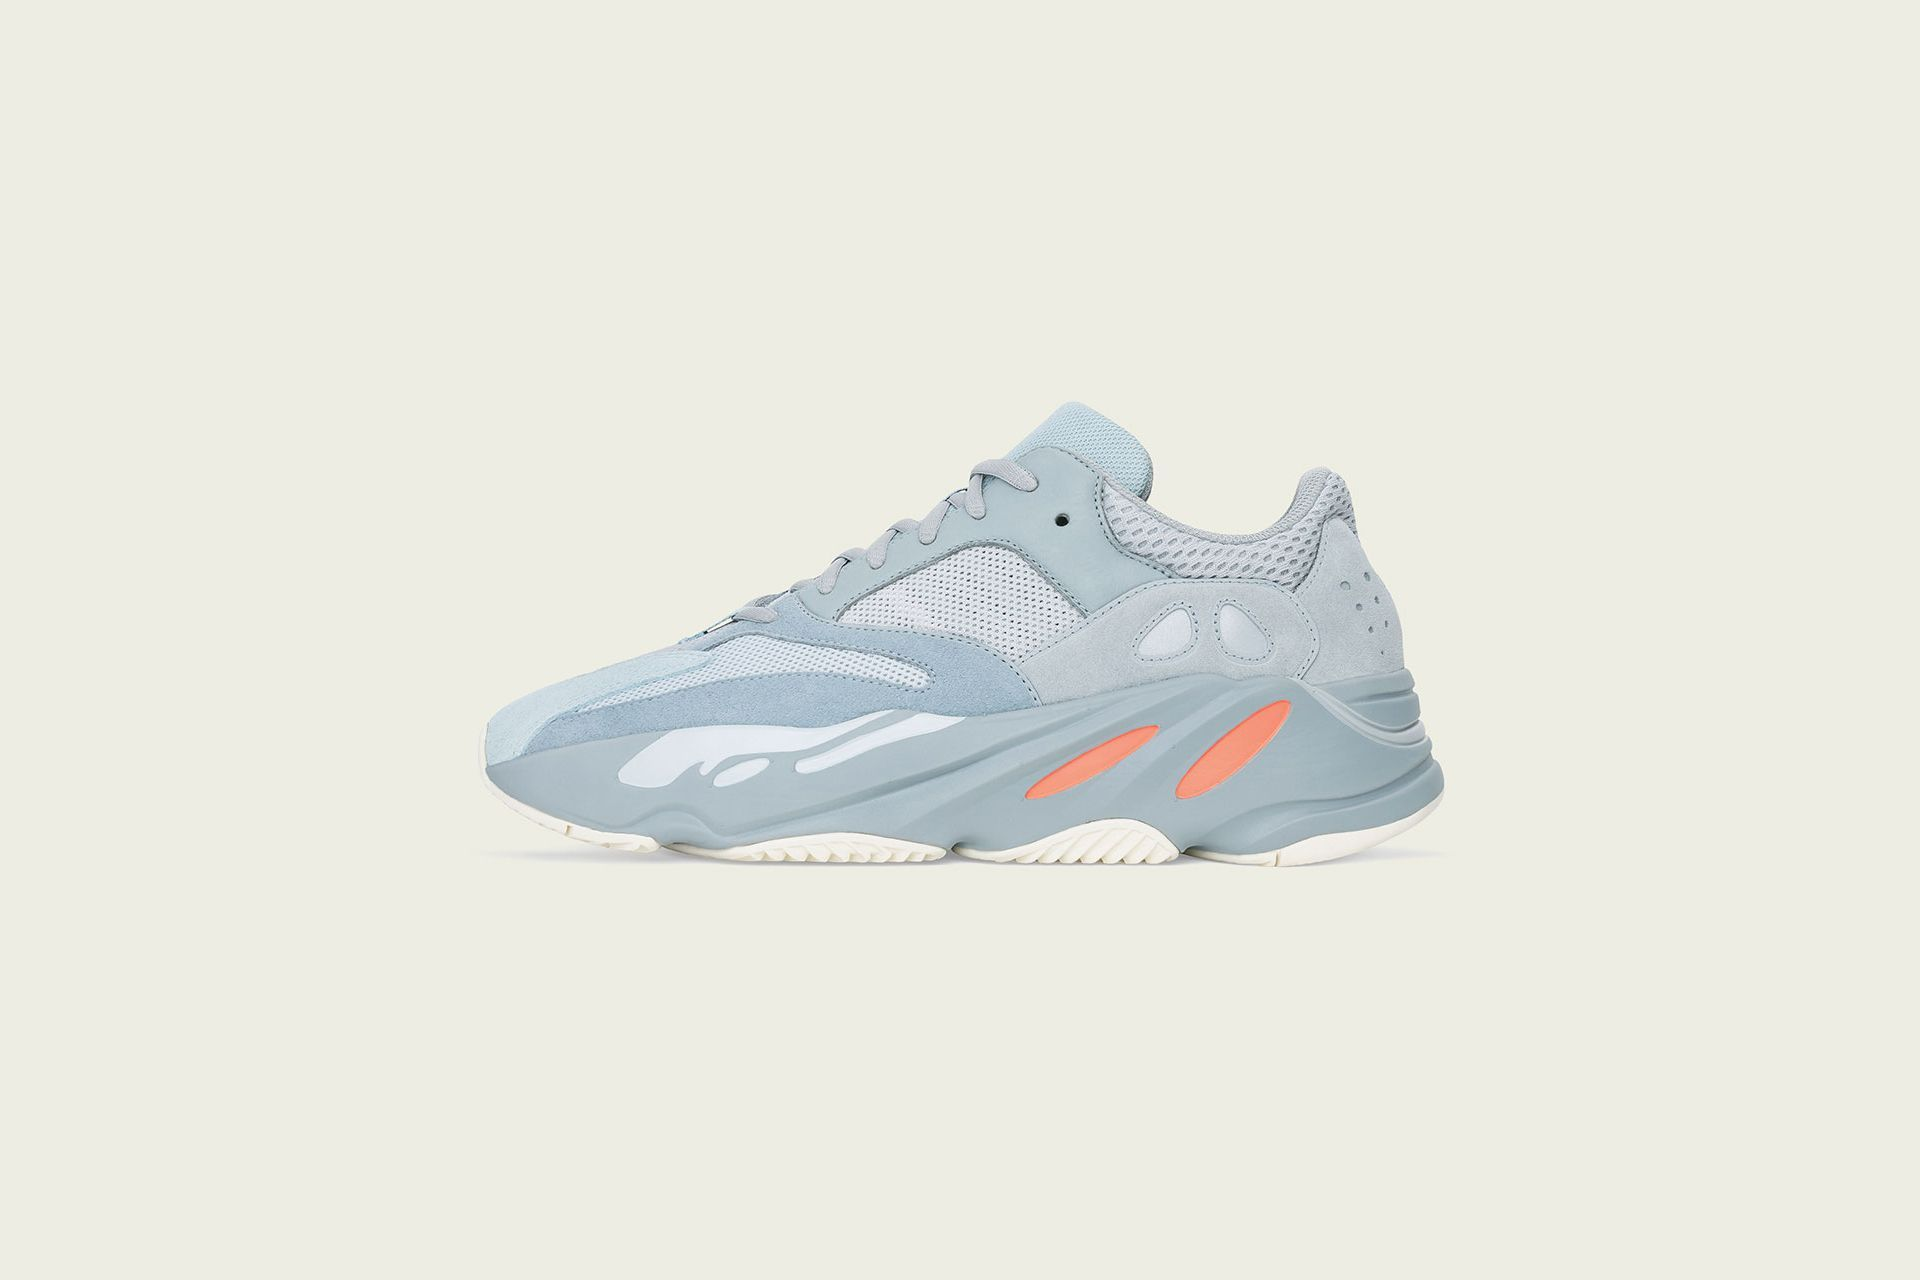 promo code 2849a 0919b adidas Officially Presents the New Yeezy Boost 700